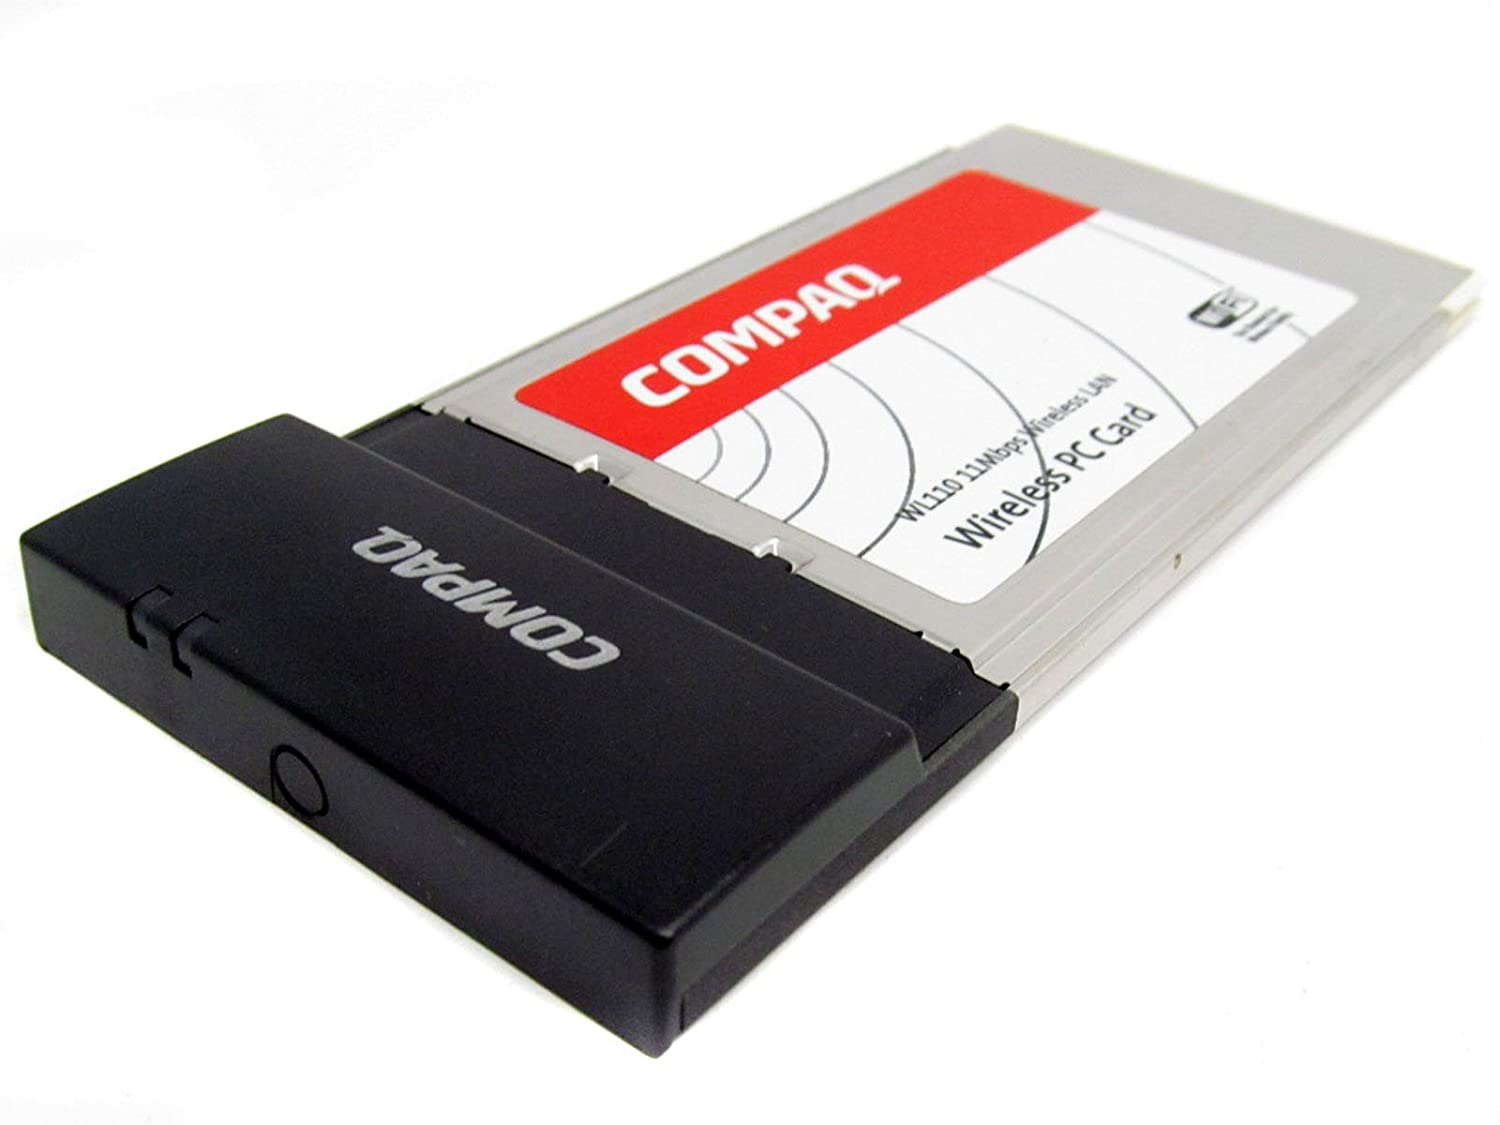 WL110 WIRELESS PC CARD DRIVERS